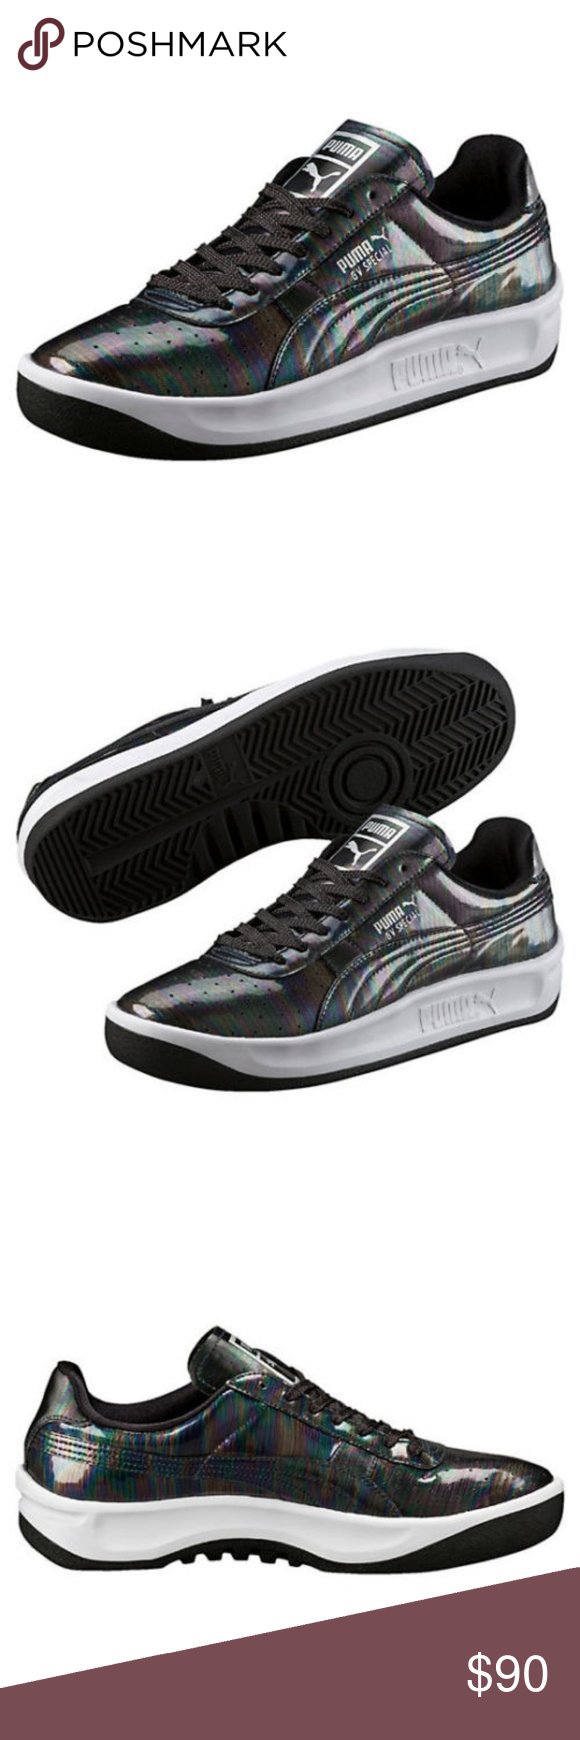 900ae033cbe6 MEN S PUMA GV SPECIAL IRIDESCENT BLACK-BLACK 36111 Condition  New with box   A